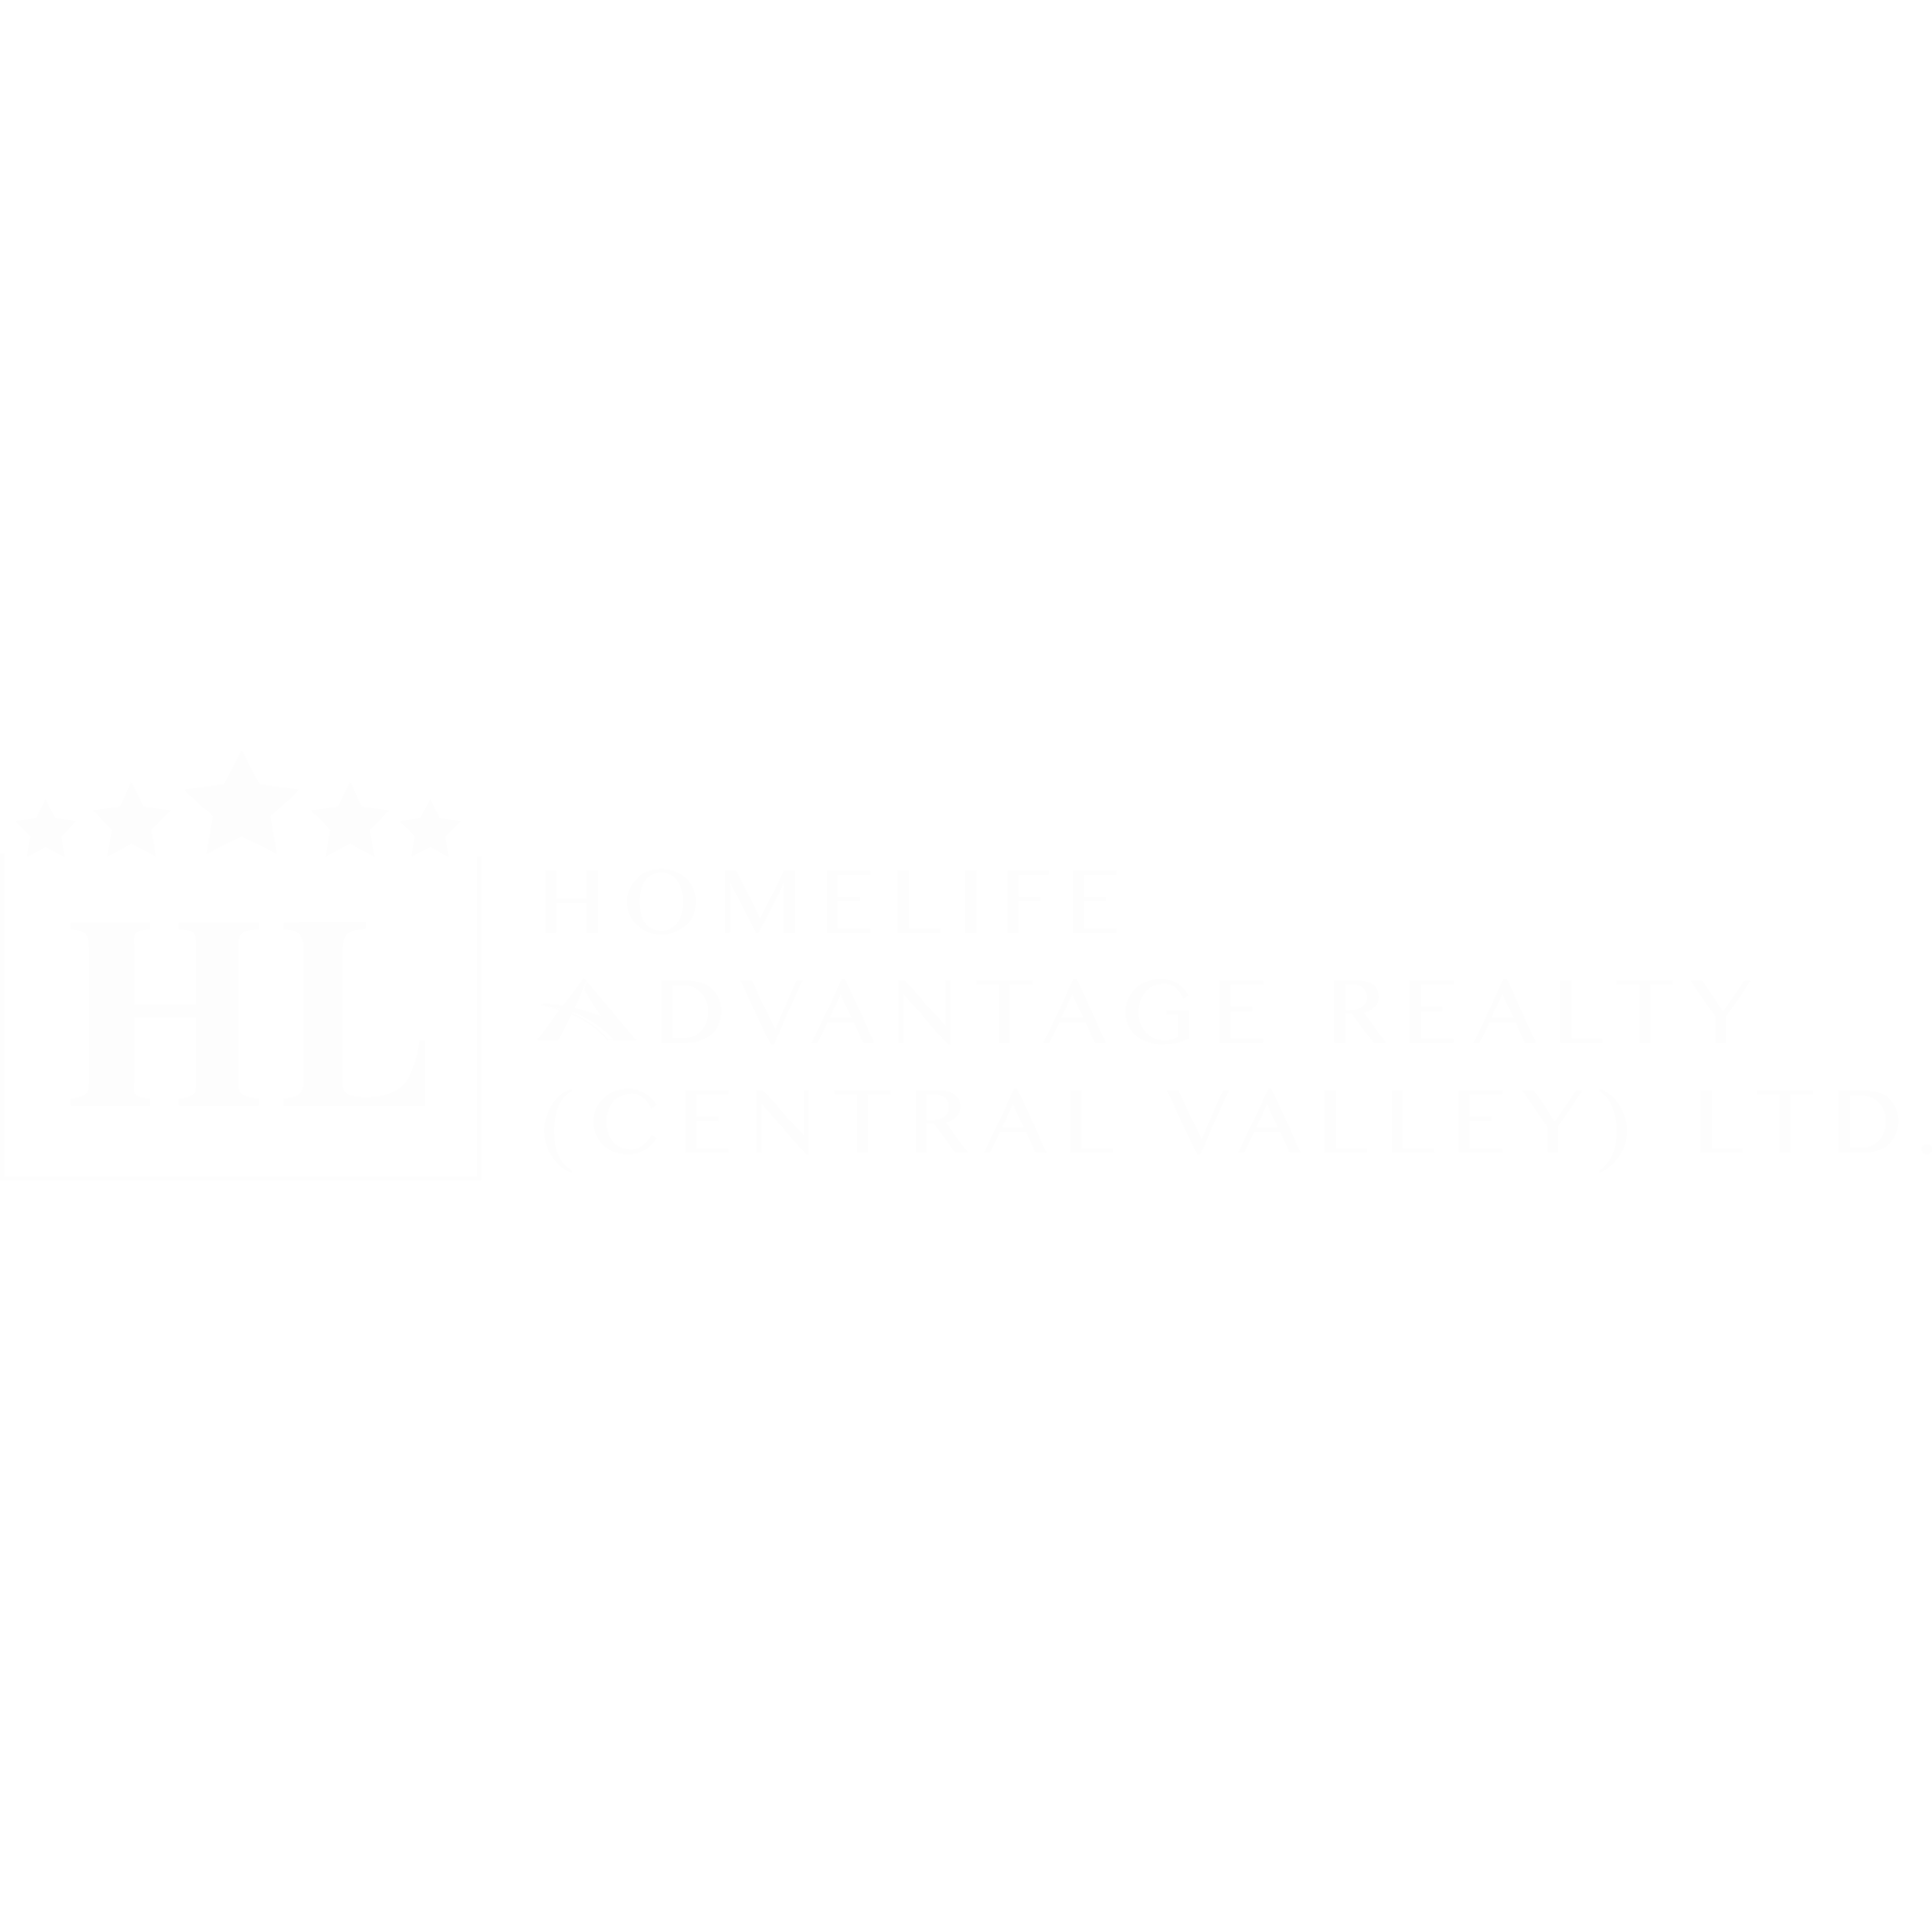 Homelife Advantage Realty Central Valley